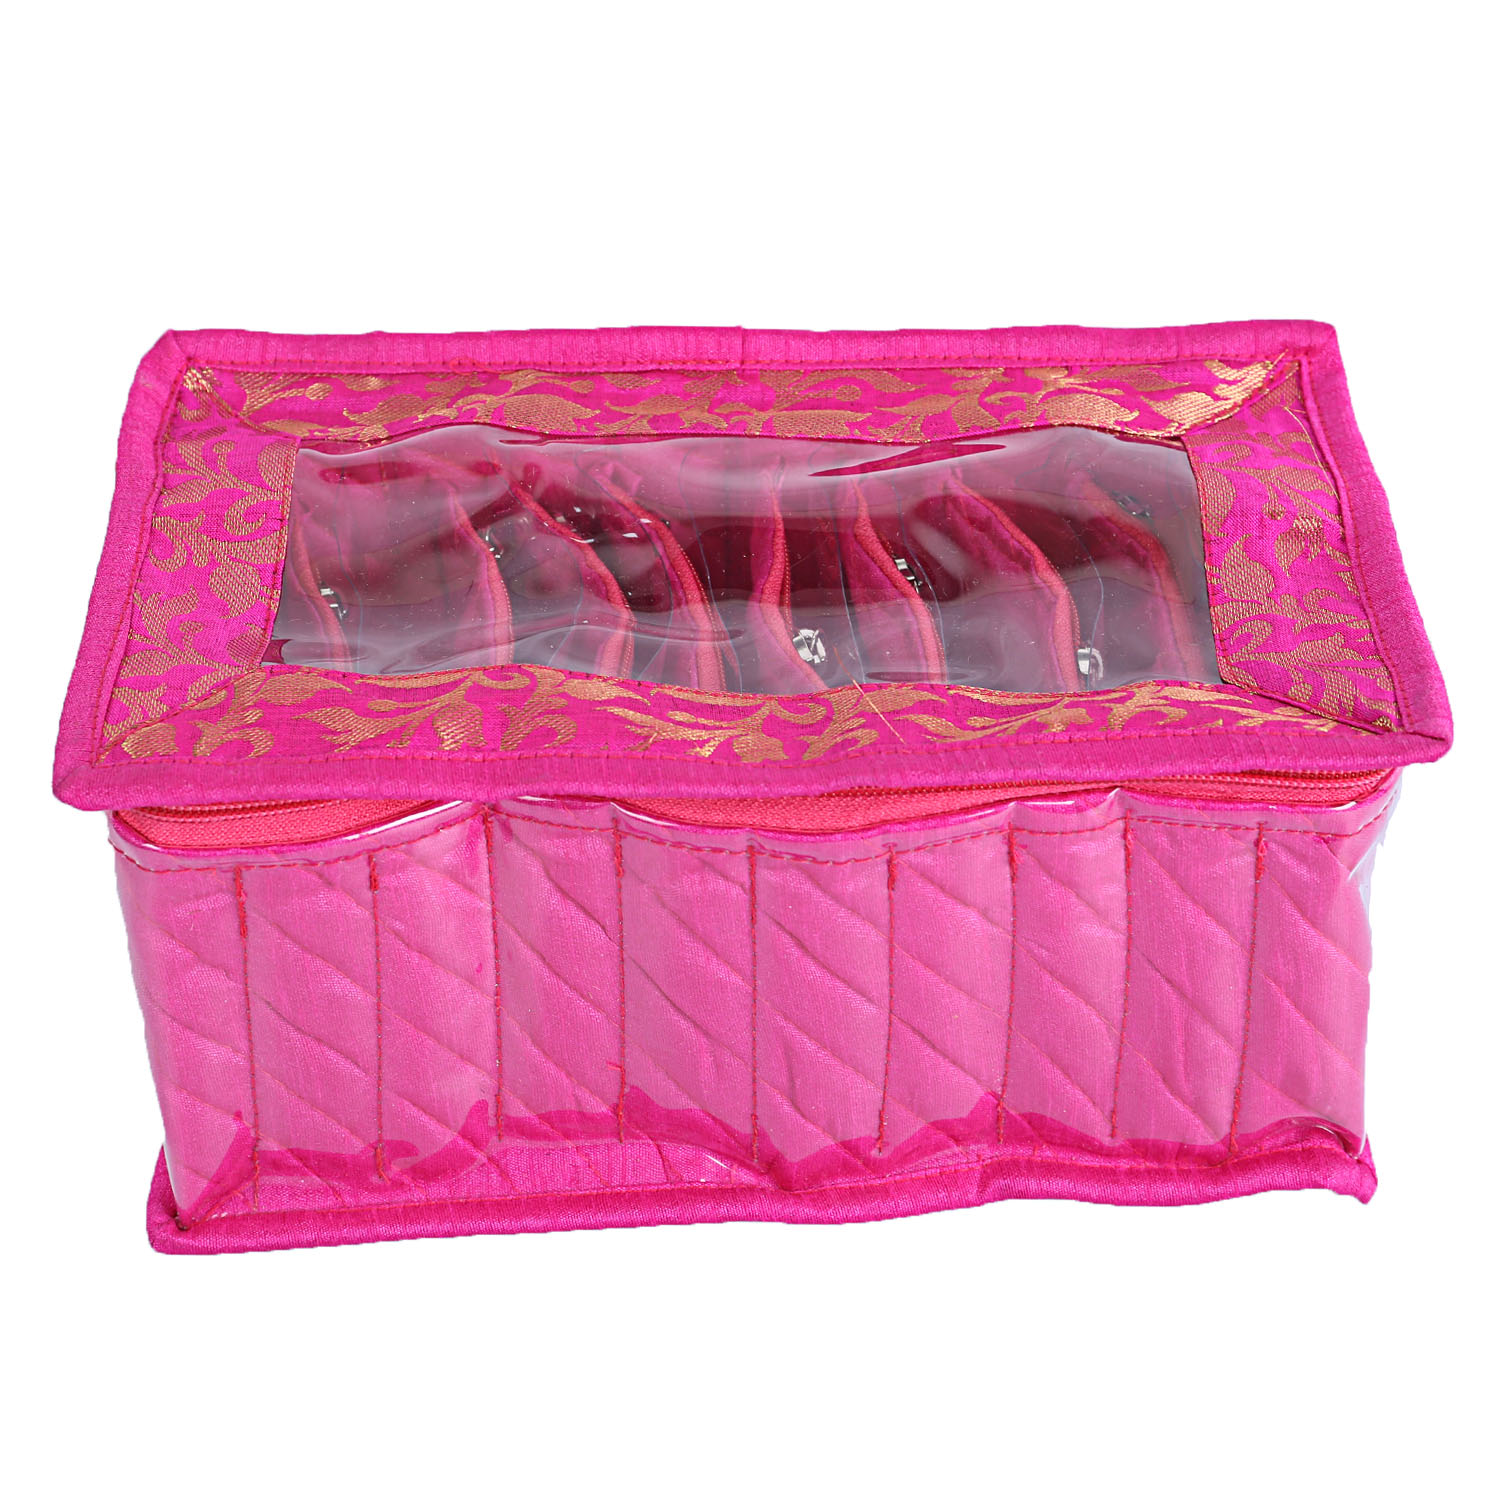 Kuber Industries Cotton 2 Pieces 10 Pouch Jewellery Box (Pink & Green) -CTKTC5343